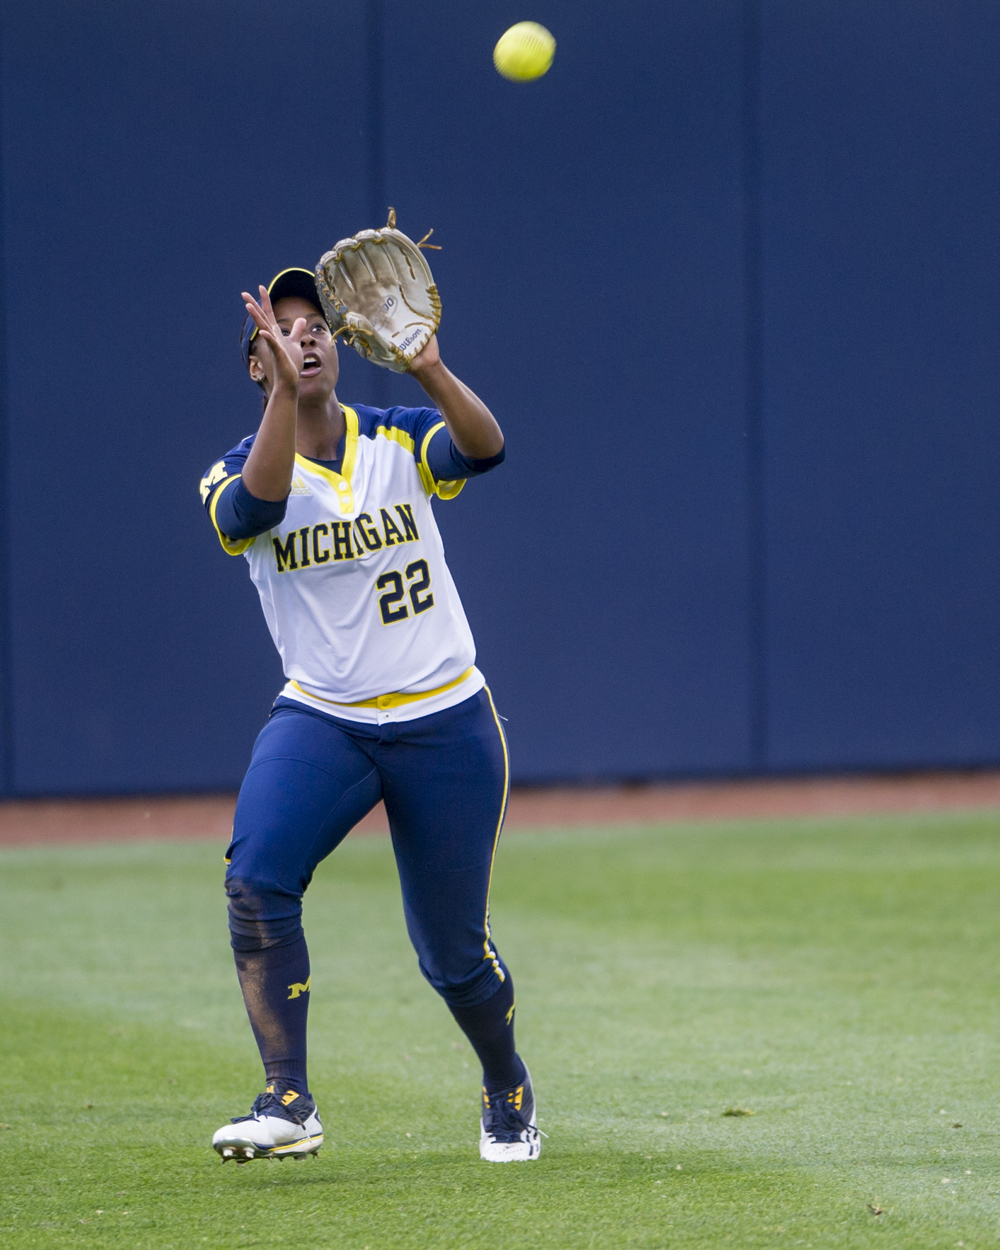 Michigan center fielder Sierra Lawrence lines up to catch a fly ball during the team's semifinal game against Penn State in the Big Ten Tournament at Beard Field on Saturday, May 14, 2016. Michigan won the game 7-1.